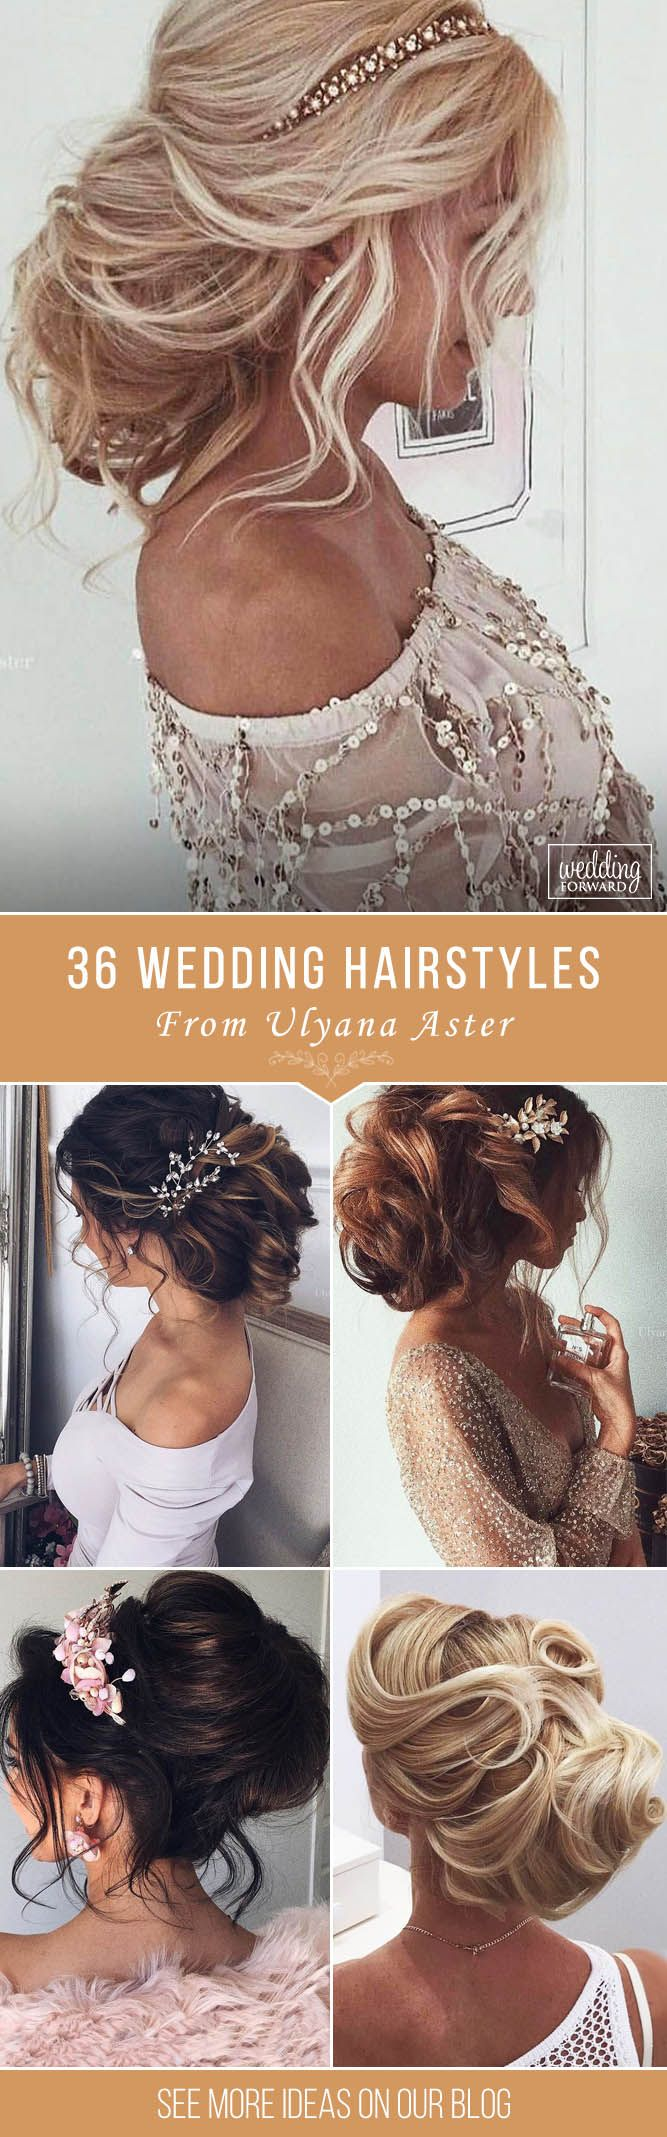 36 Wedding Hairstyles For Long Hair From Ulyana Aster ❤ Are you looking for go...